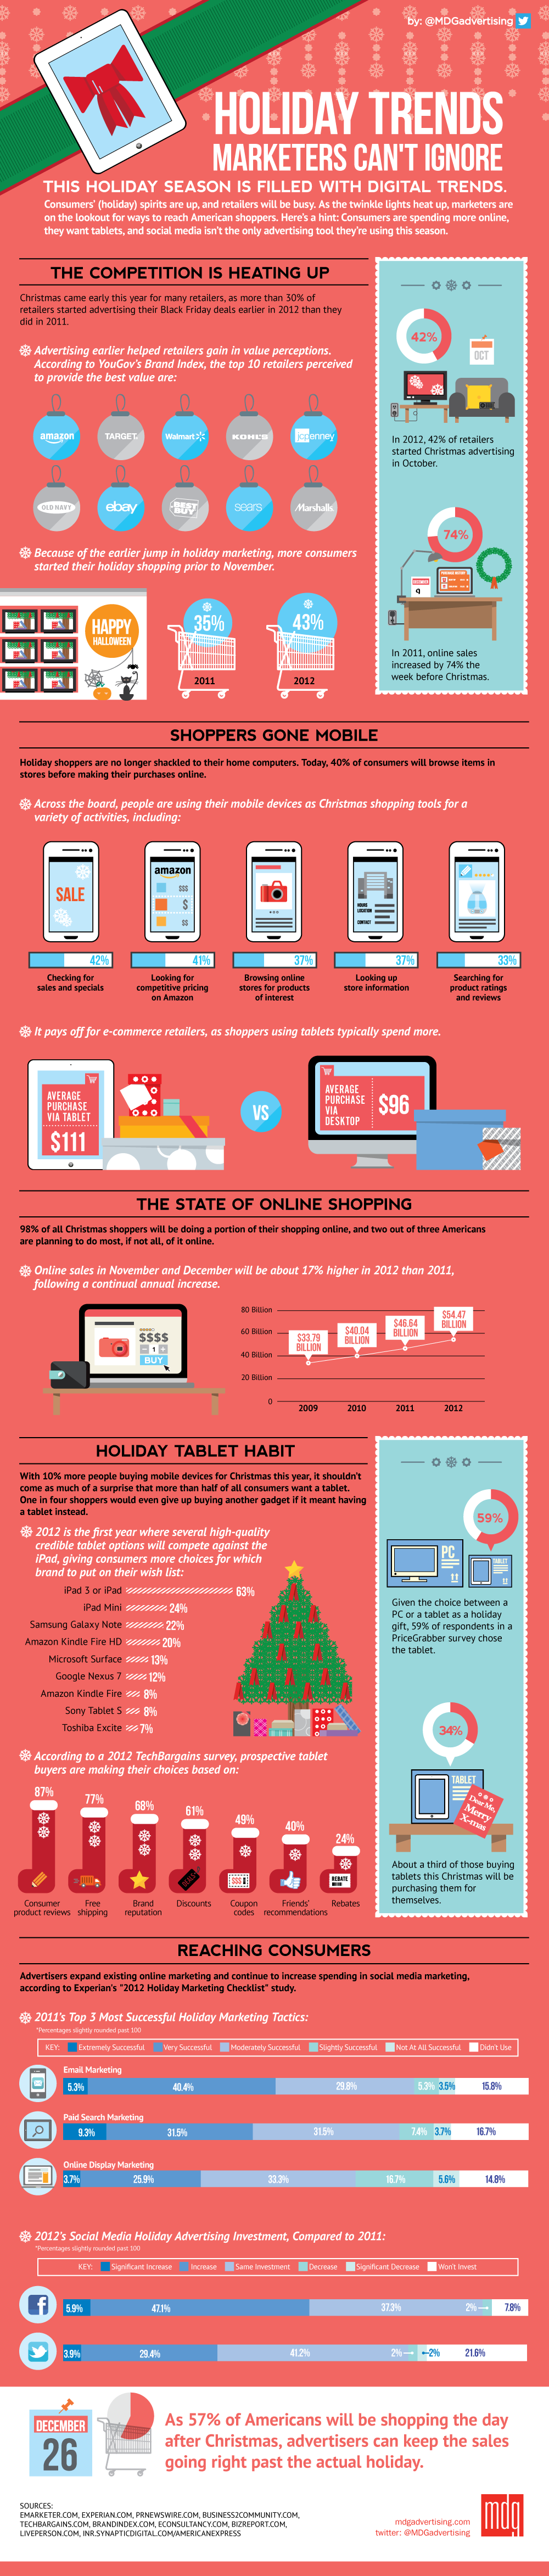 Holiday Trends Marketers Can't Ignore [Infographic]